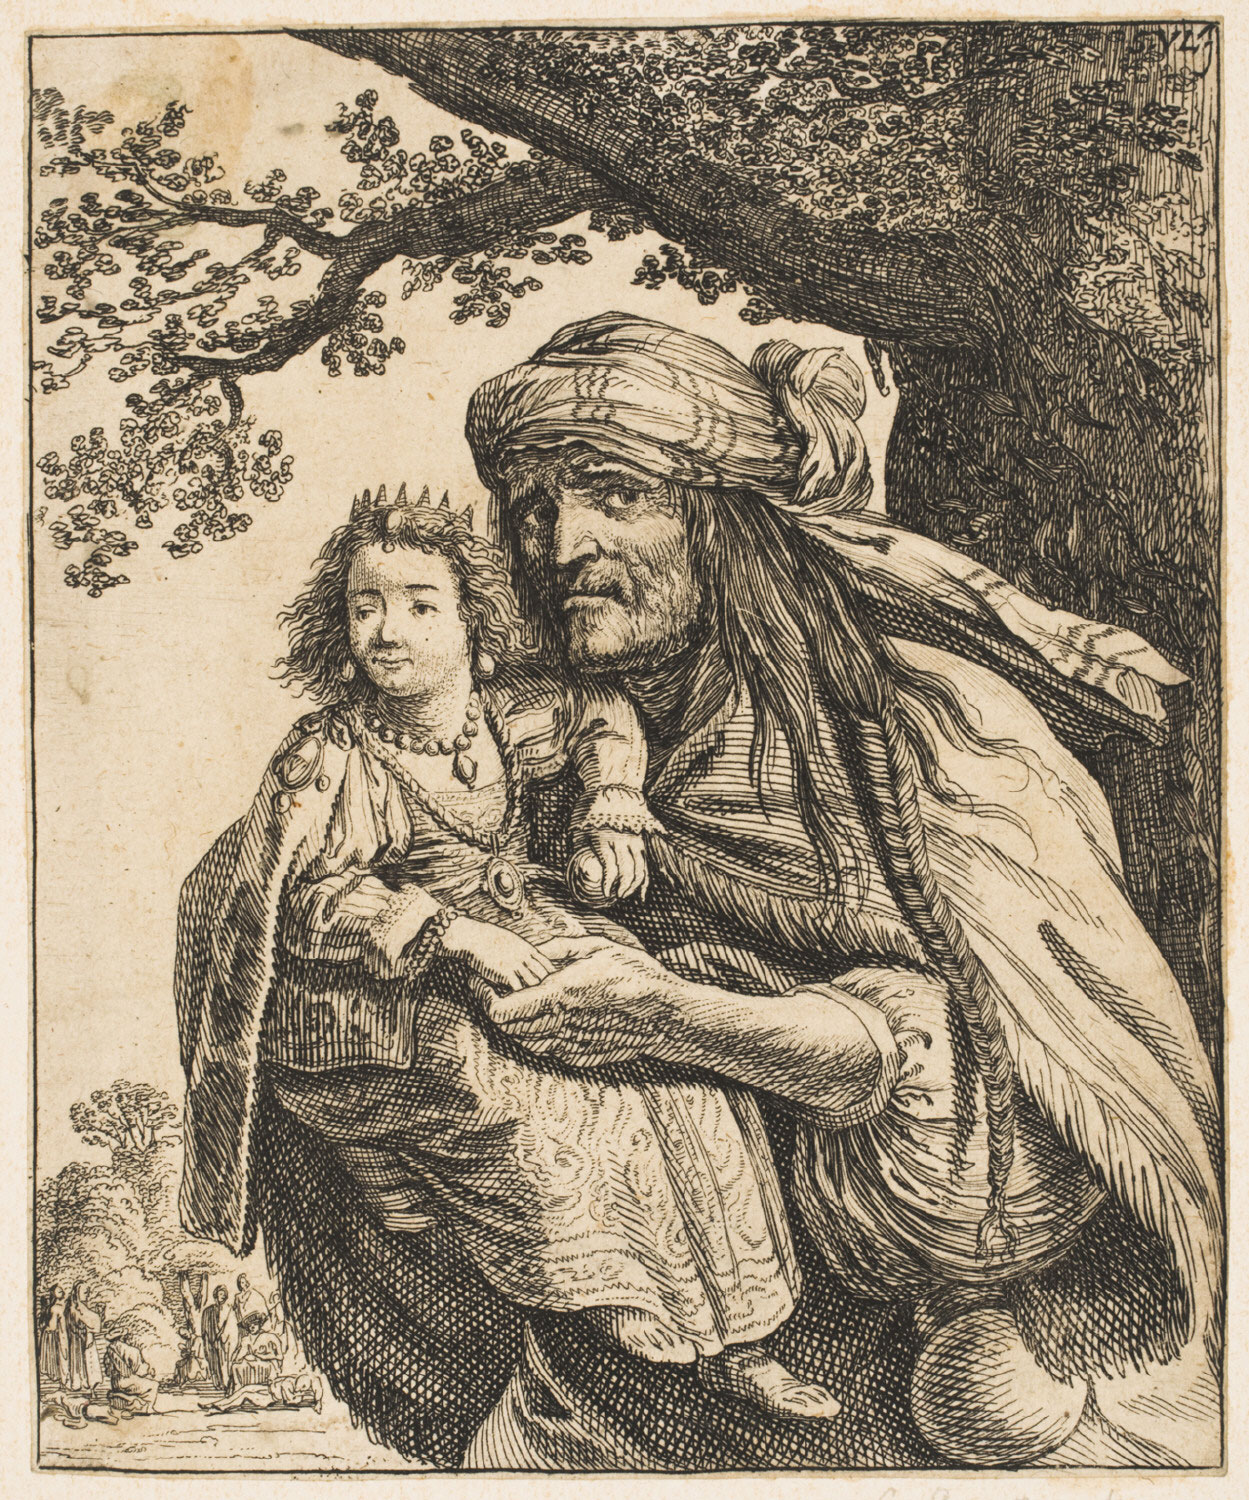 A Gypsy Carrying a Little Princess